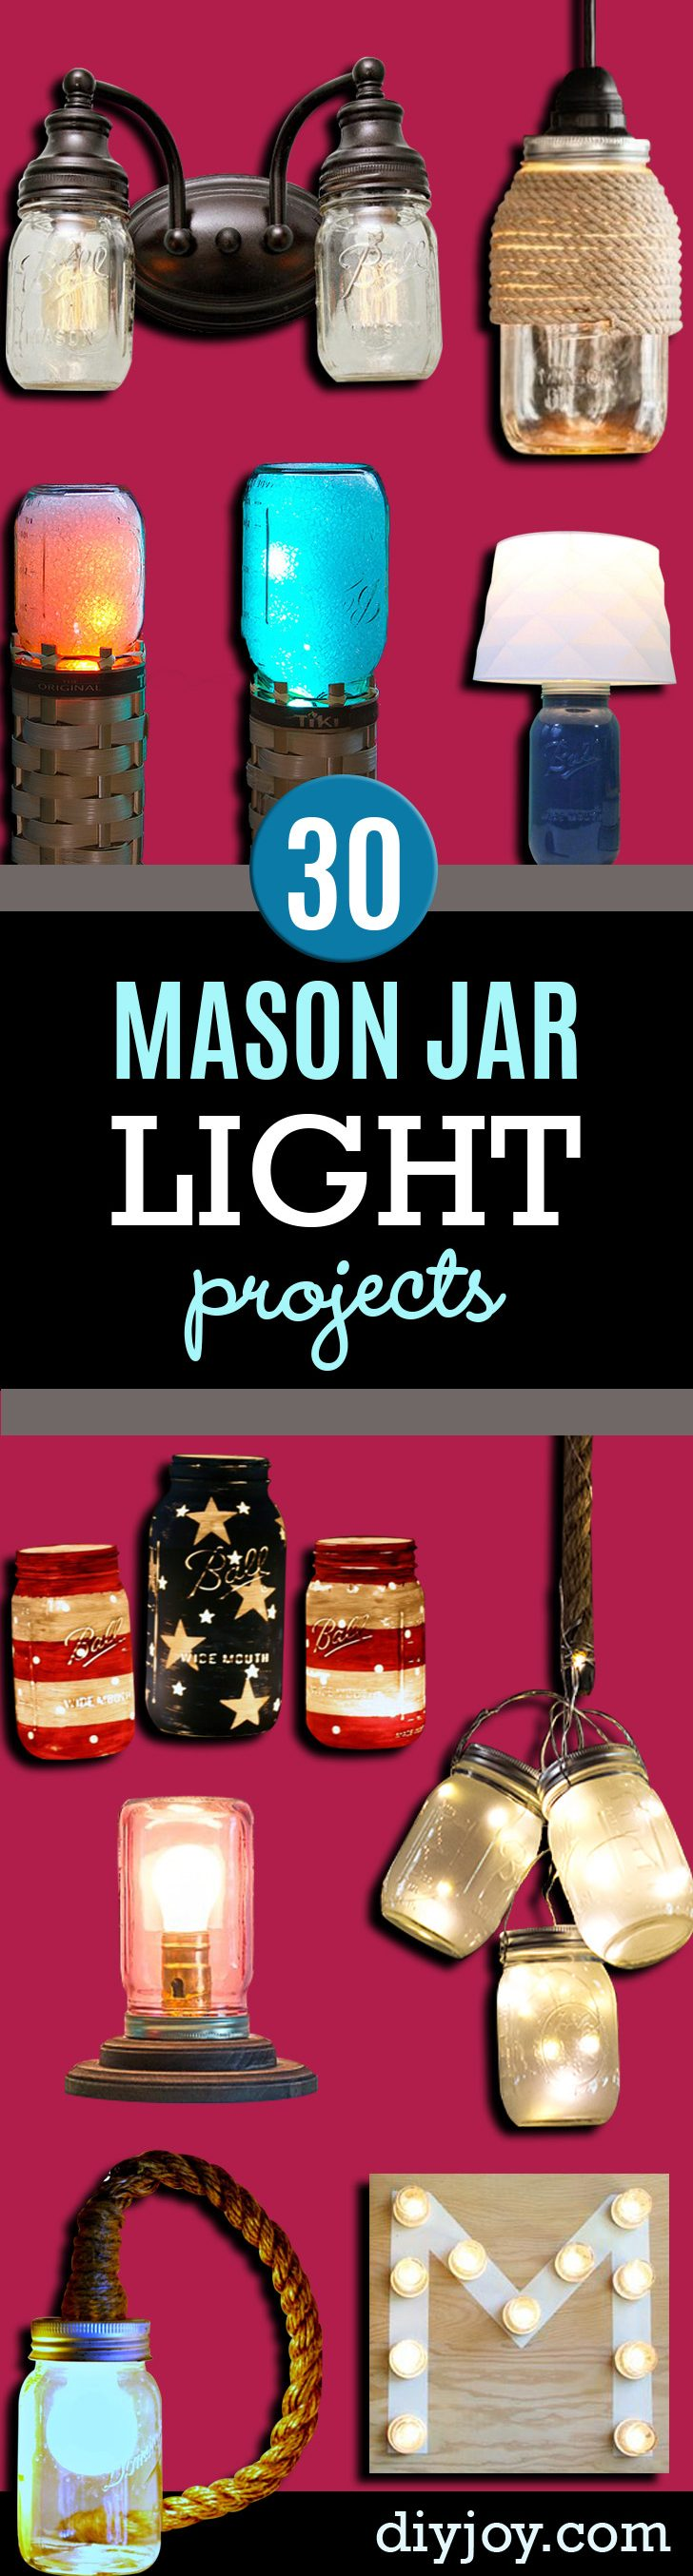 Mason Jar Lights - DIY Ideas with Mason Jars for Outdoor, Kitchen, Bathroom, Bedroom and Home, Wedding. How to Make Hanging Lanterns, Rustic Chandeliers and Pendants, Solar Lights for Outside